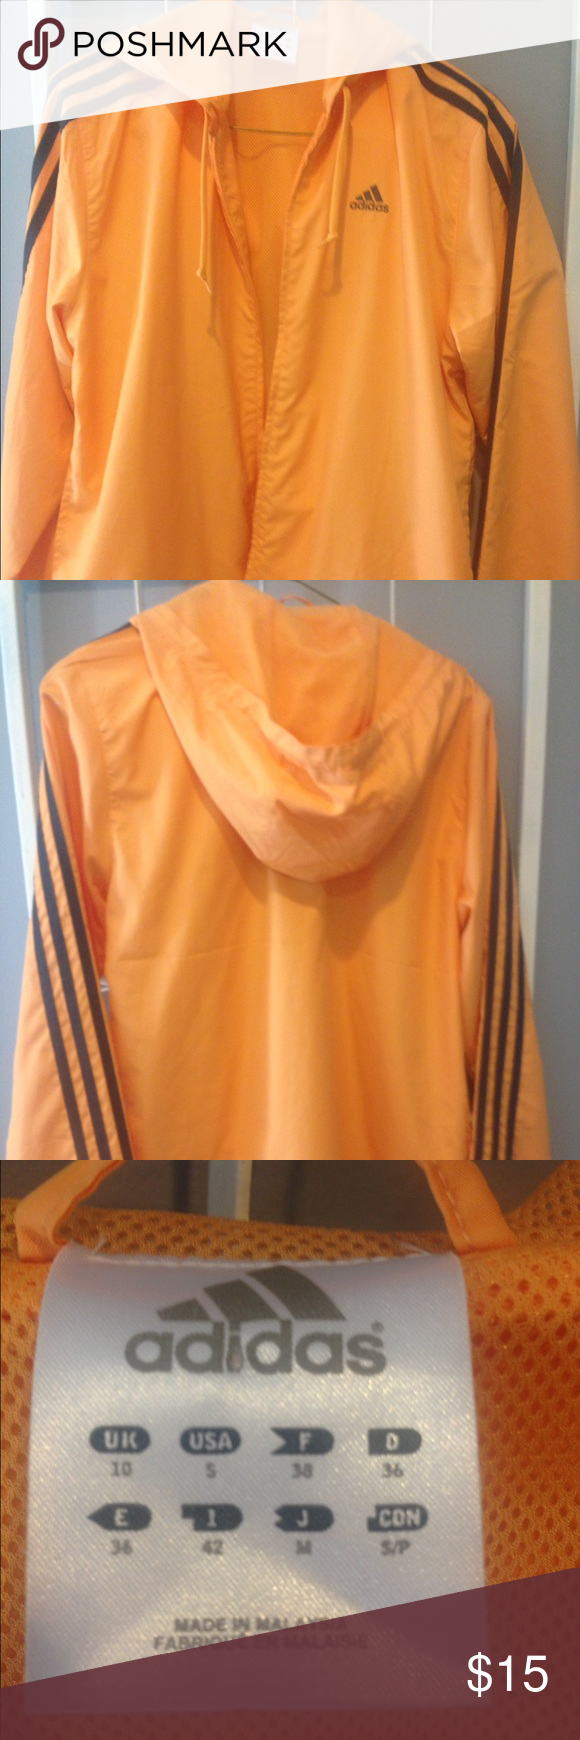 Adidas hooded zip front jacket size S Hooded, front zip Adidas jacket in a peachy orange color with dark blue striping. In EUC with no stains or rips. Adidas Tops Sweatshirts & Hoodies